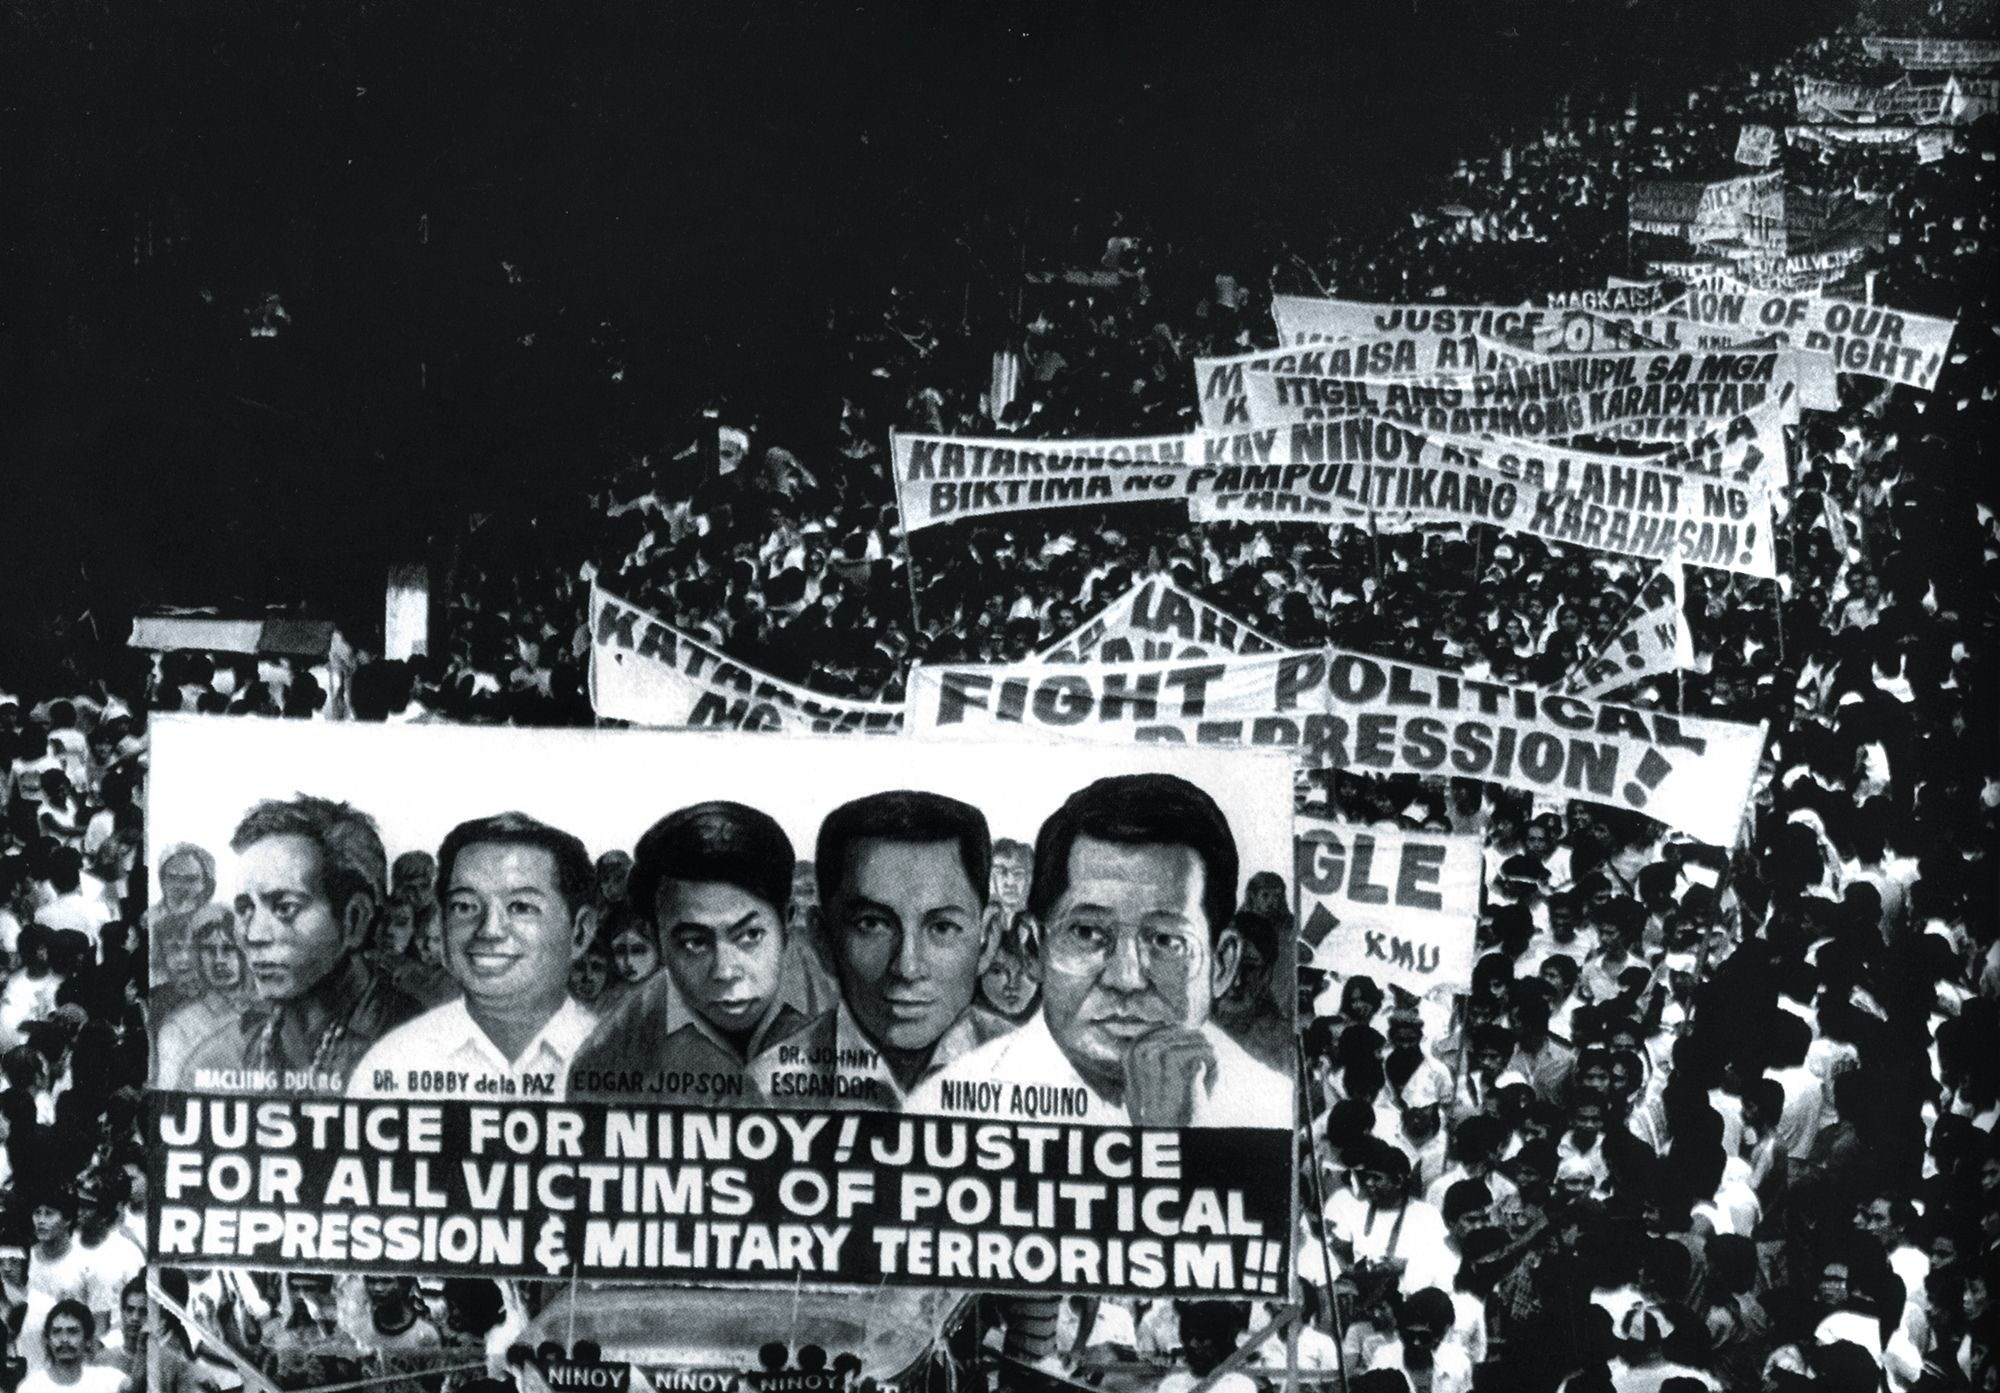 EDSA Revolution: A Look Back At The Historic 1986 People Power